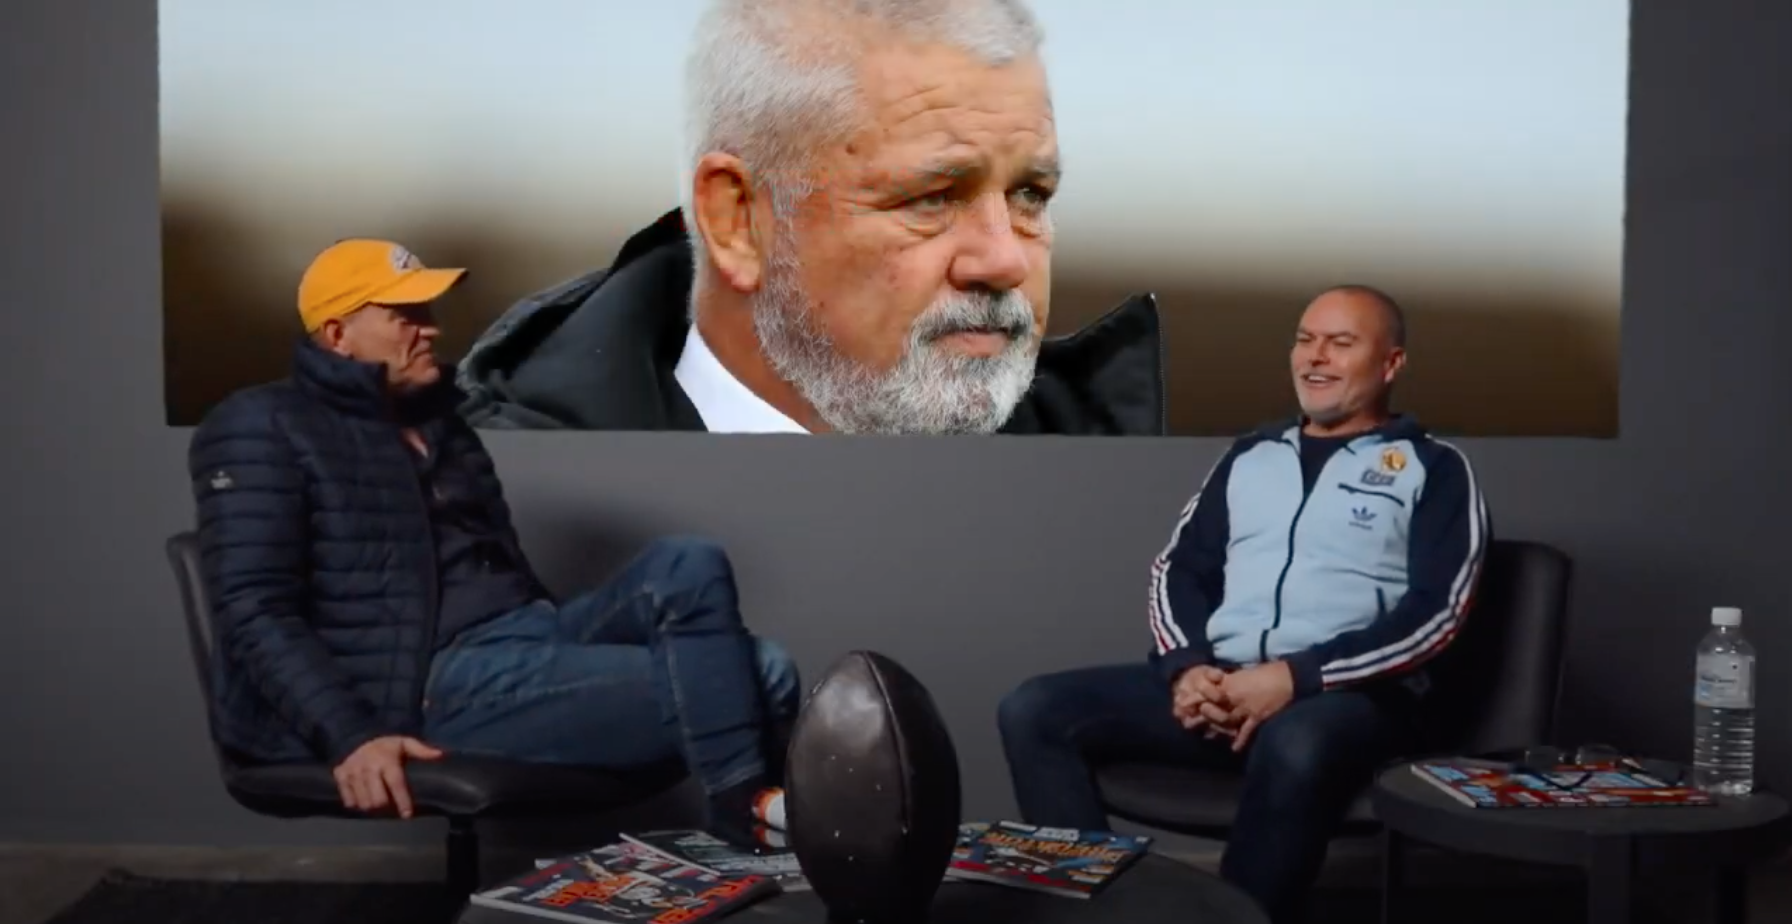 MoneyMan Show: Lions tour could be disastrous for Gatland